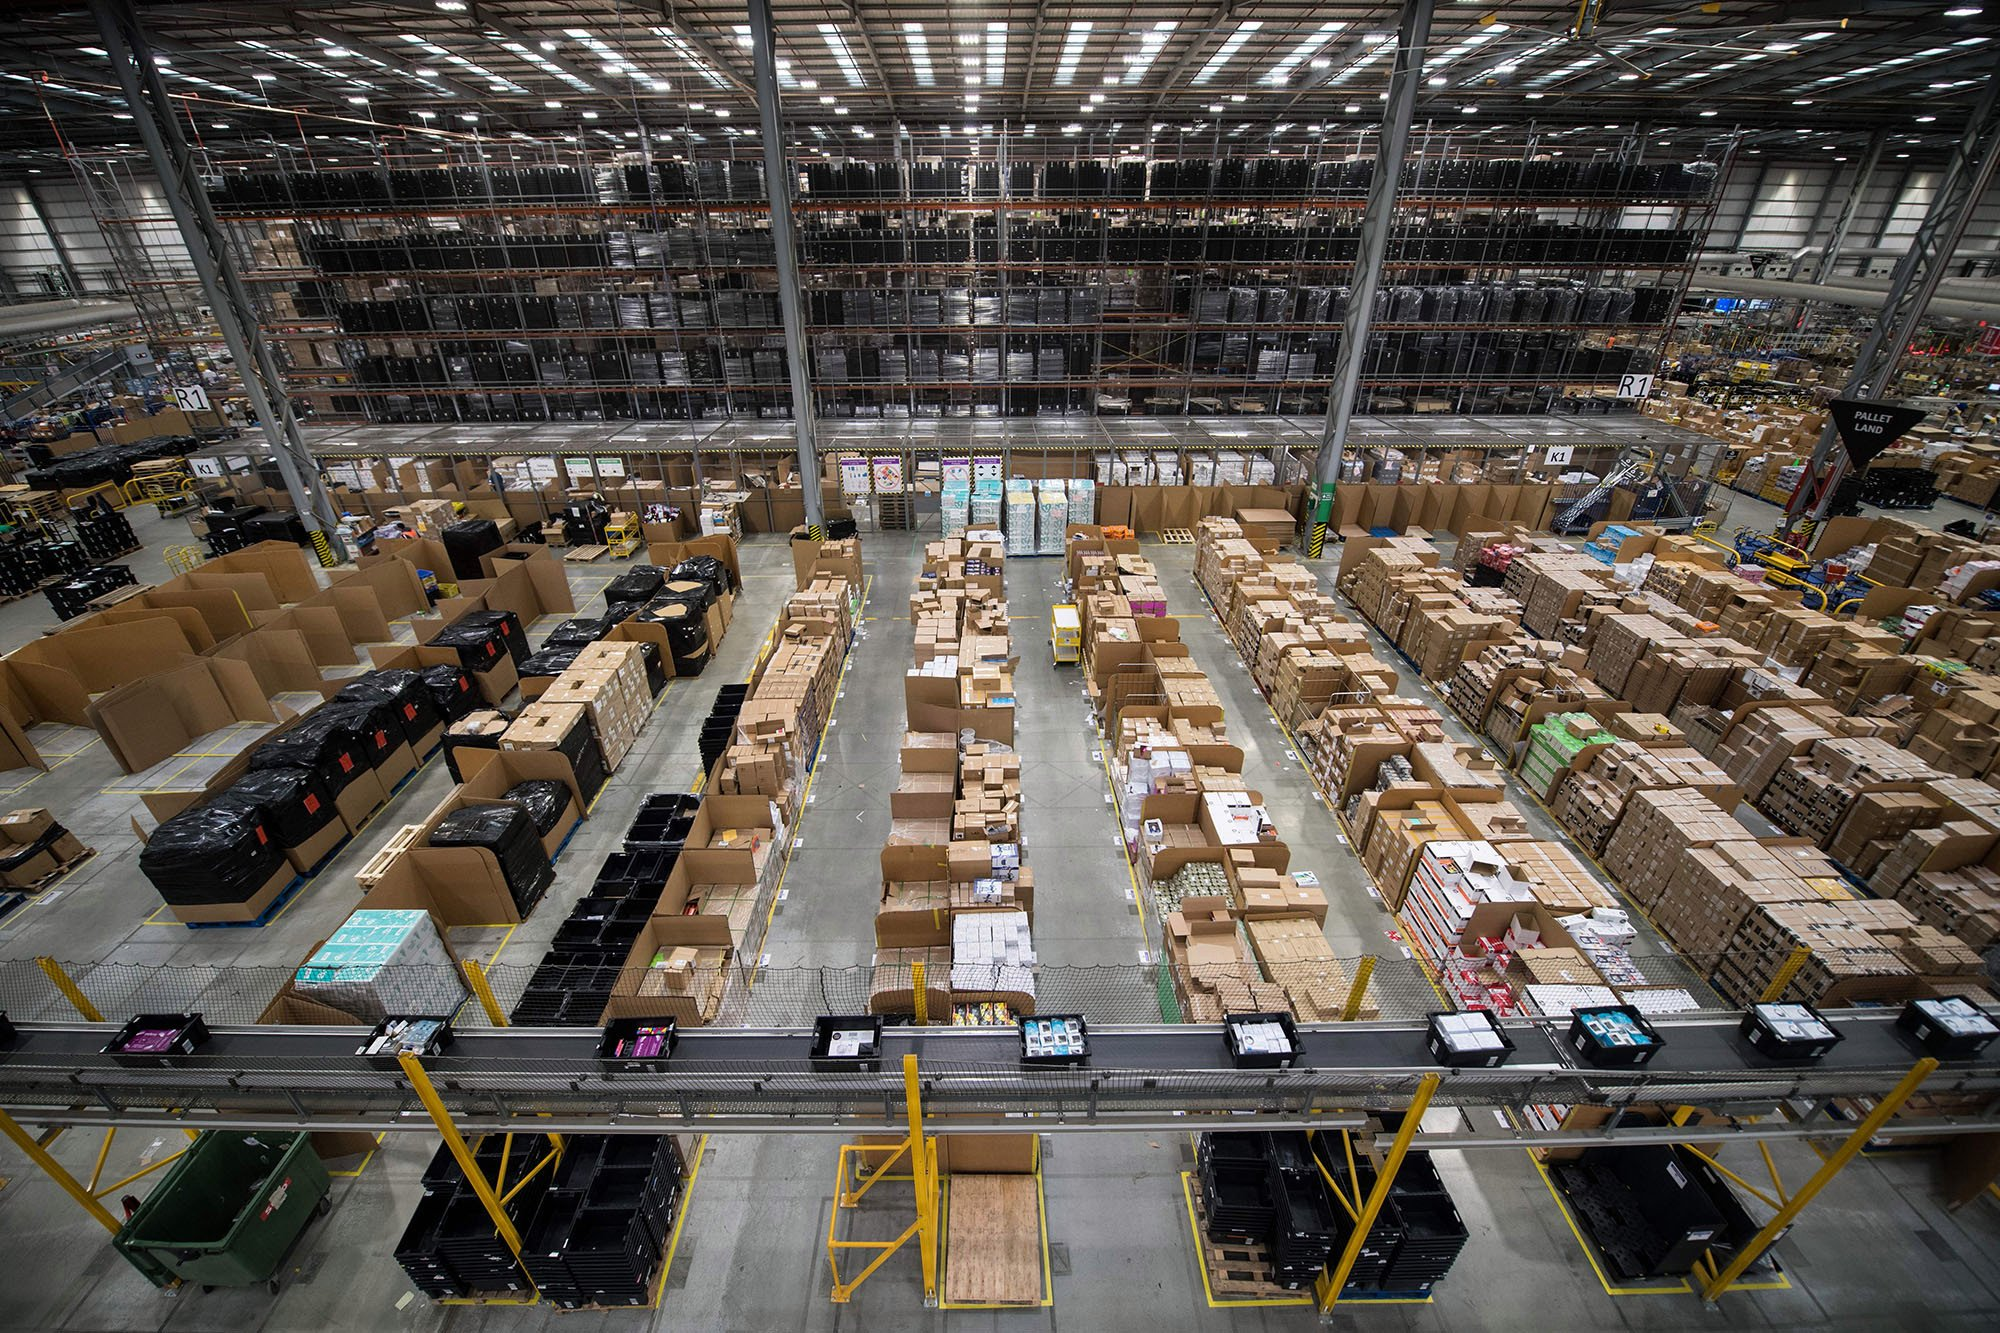 Amazon workers sickened when bear spray explodes in warehouse